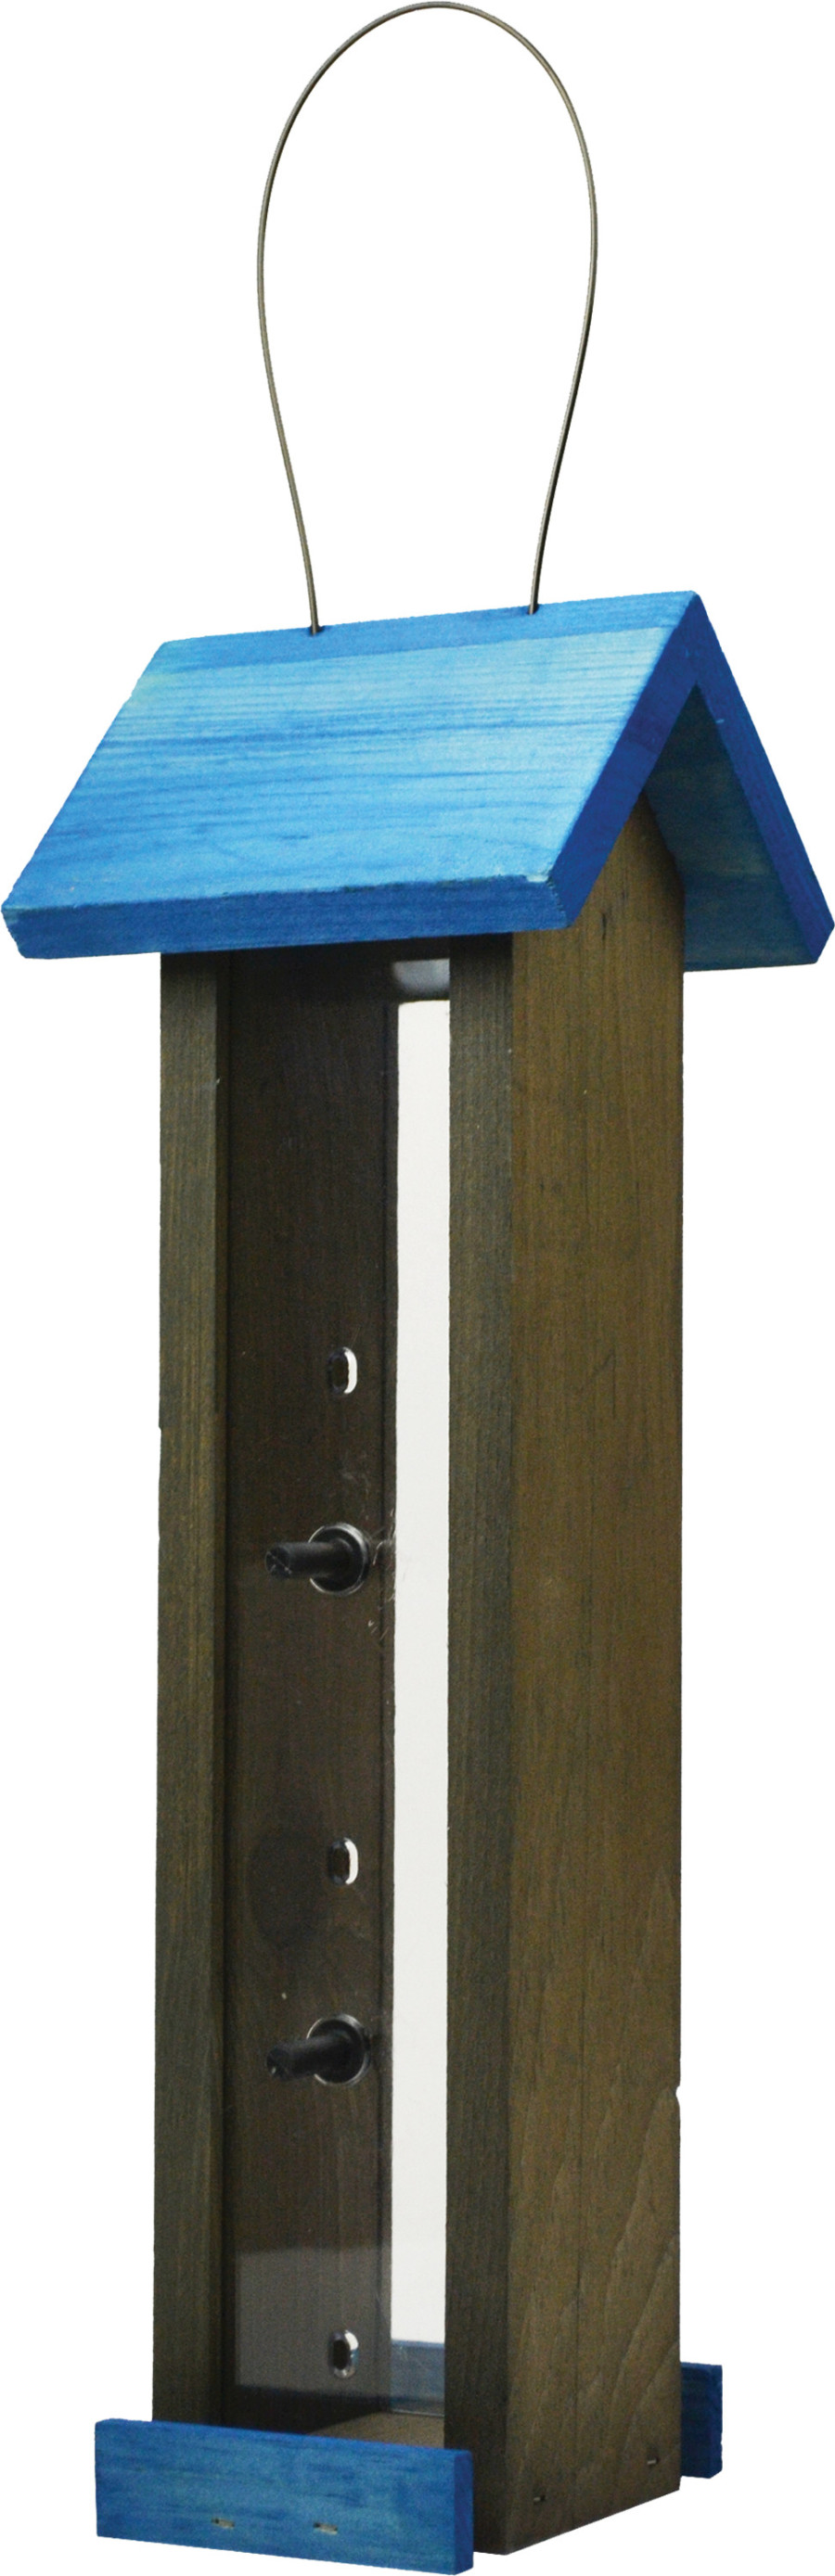 Pennington Stained Finch Bird Feeder Blue & Gray 4ea